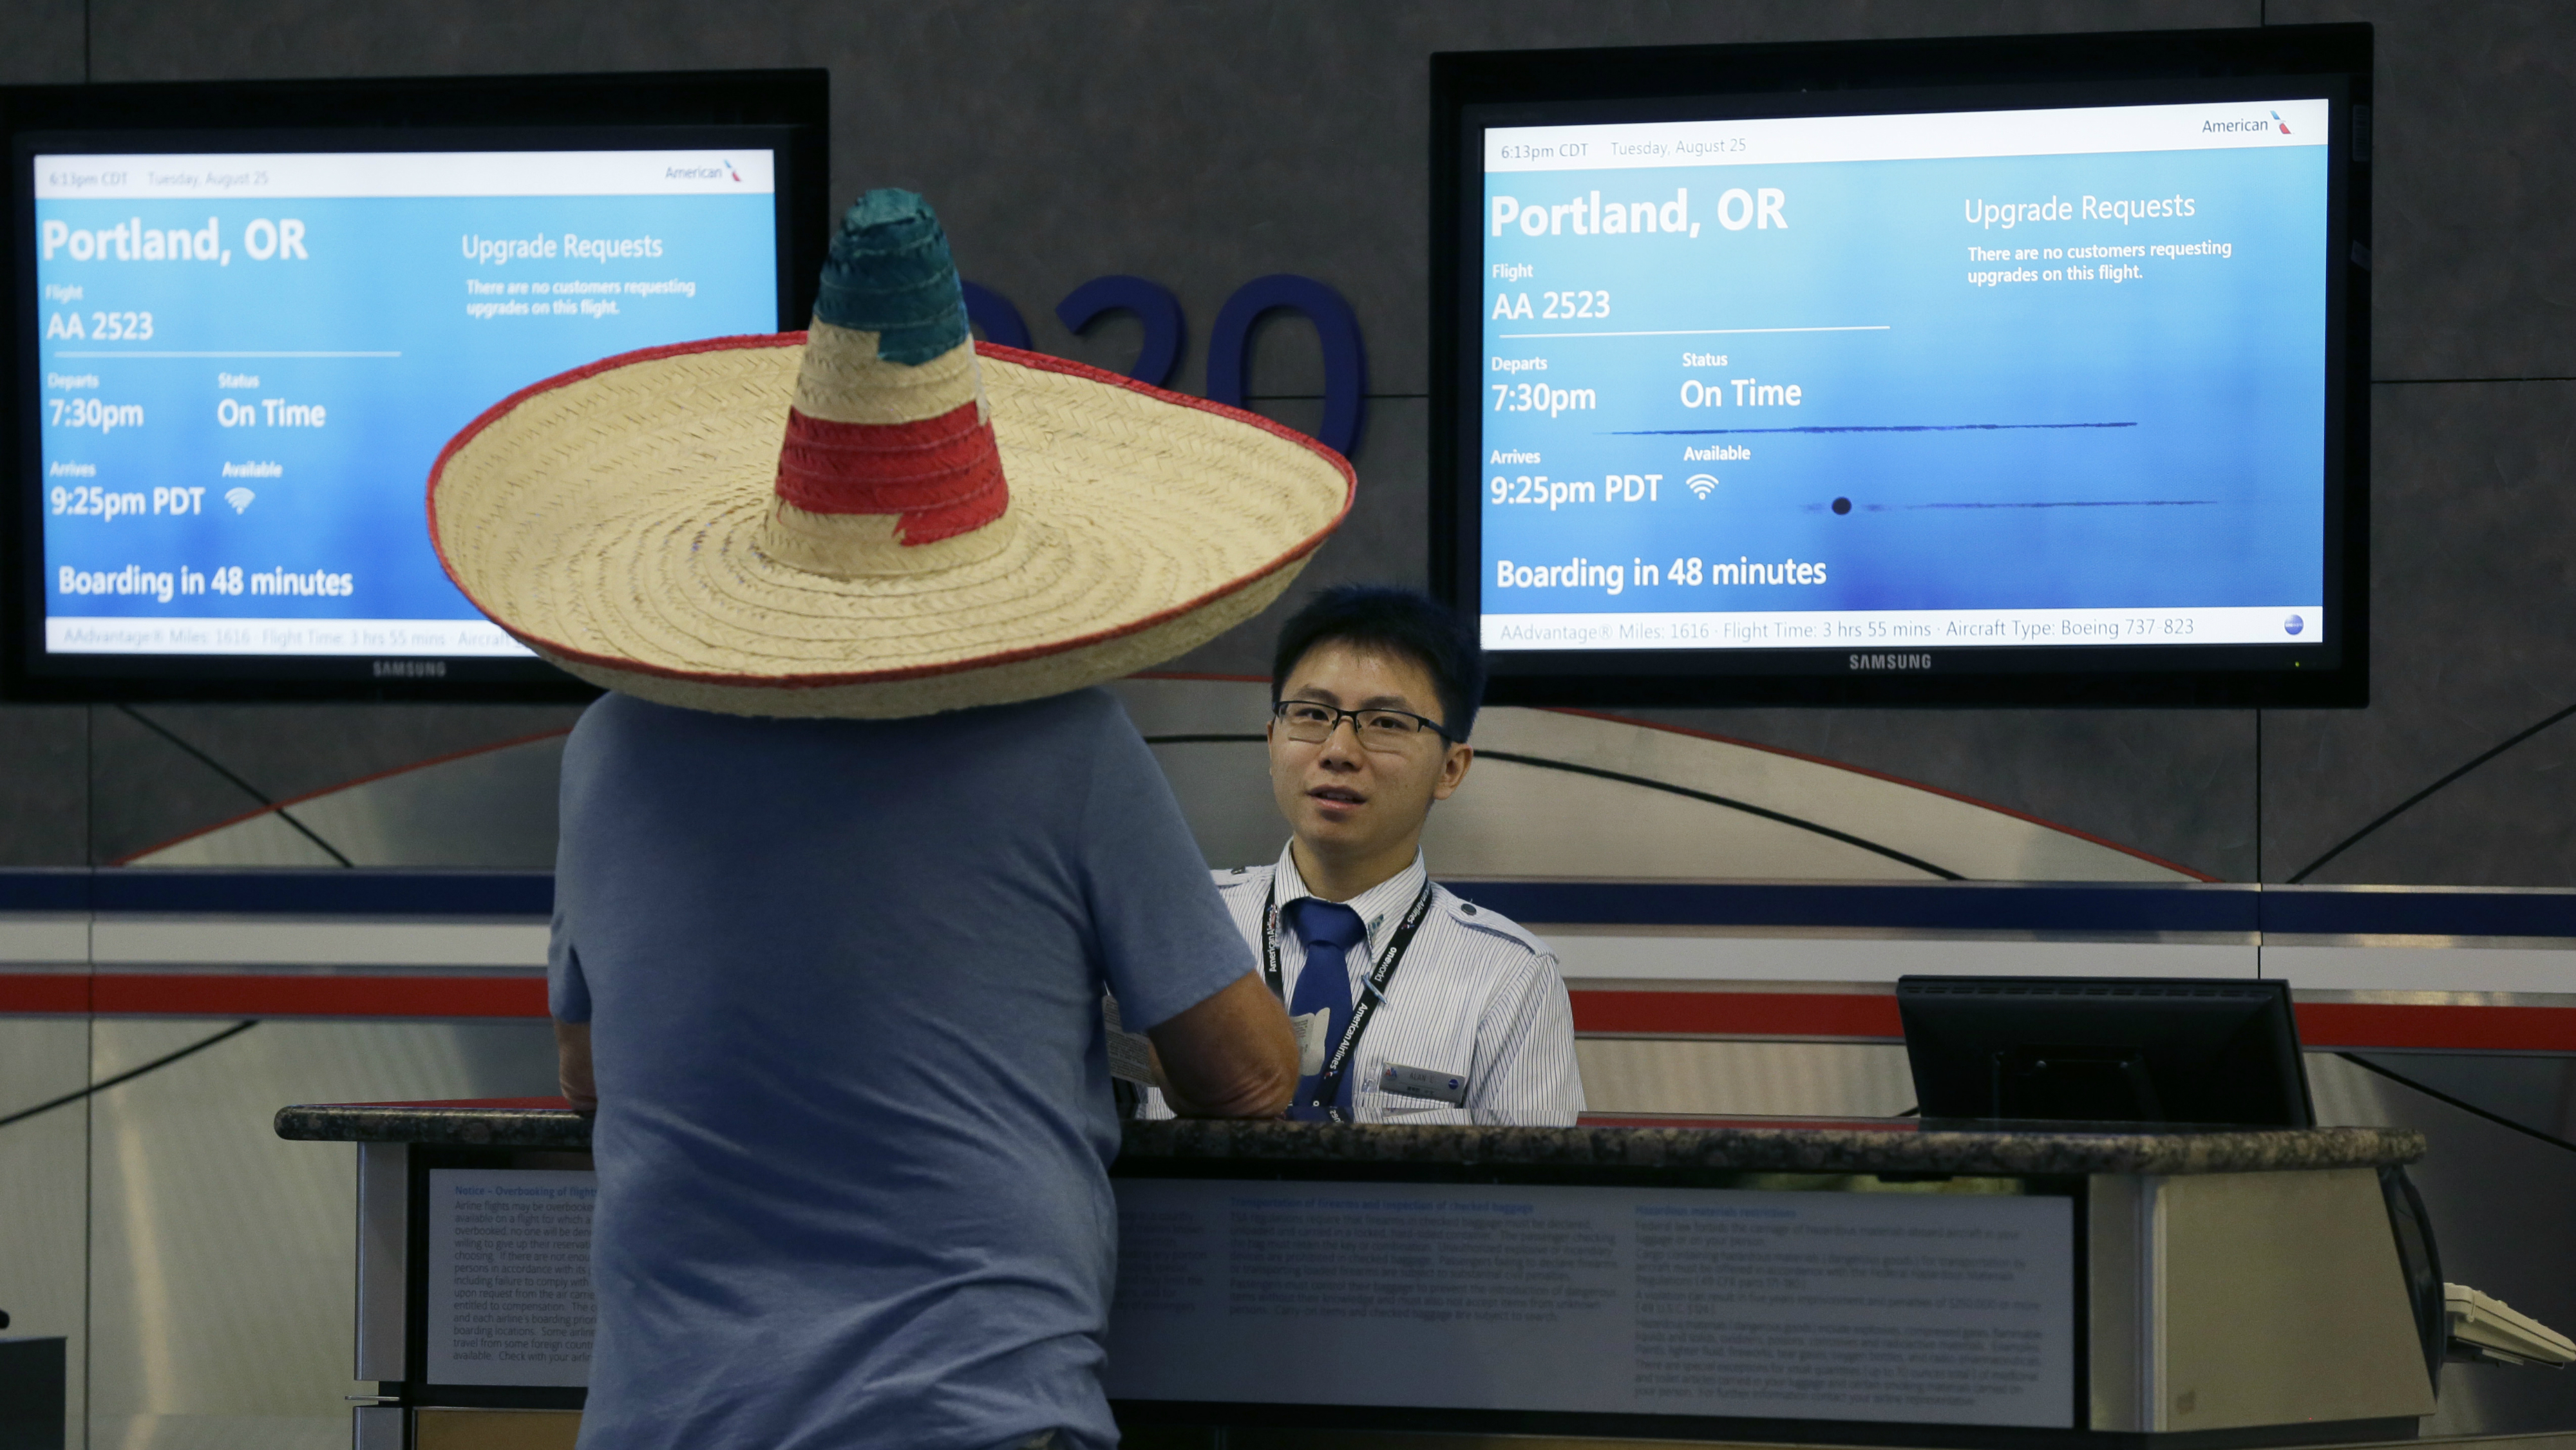 Man wearing sombrero checking in to a flight.